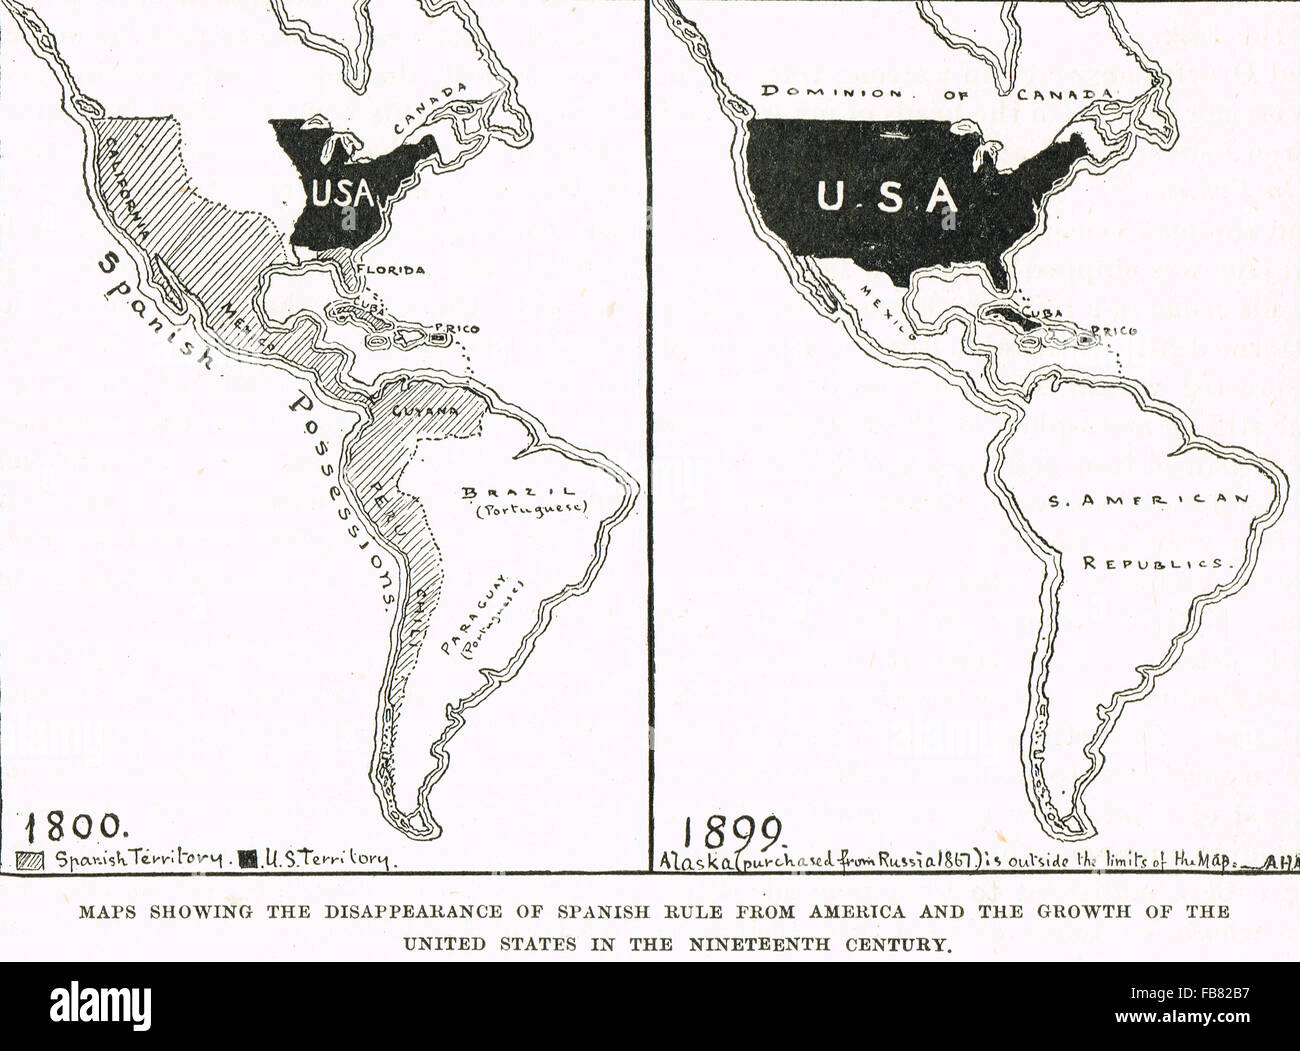 Maps showing the growth of United States of America & the decline of Spanish Rule1800-1899 - Stock Image